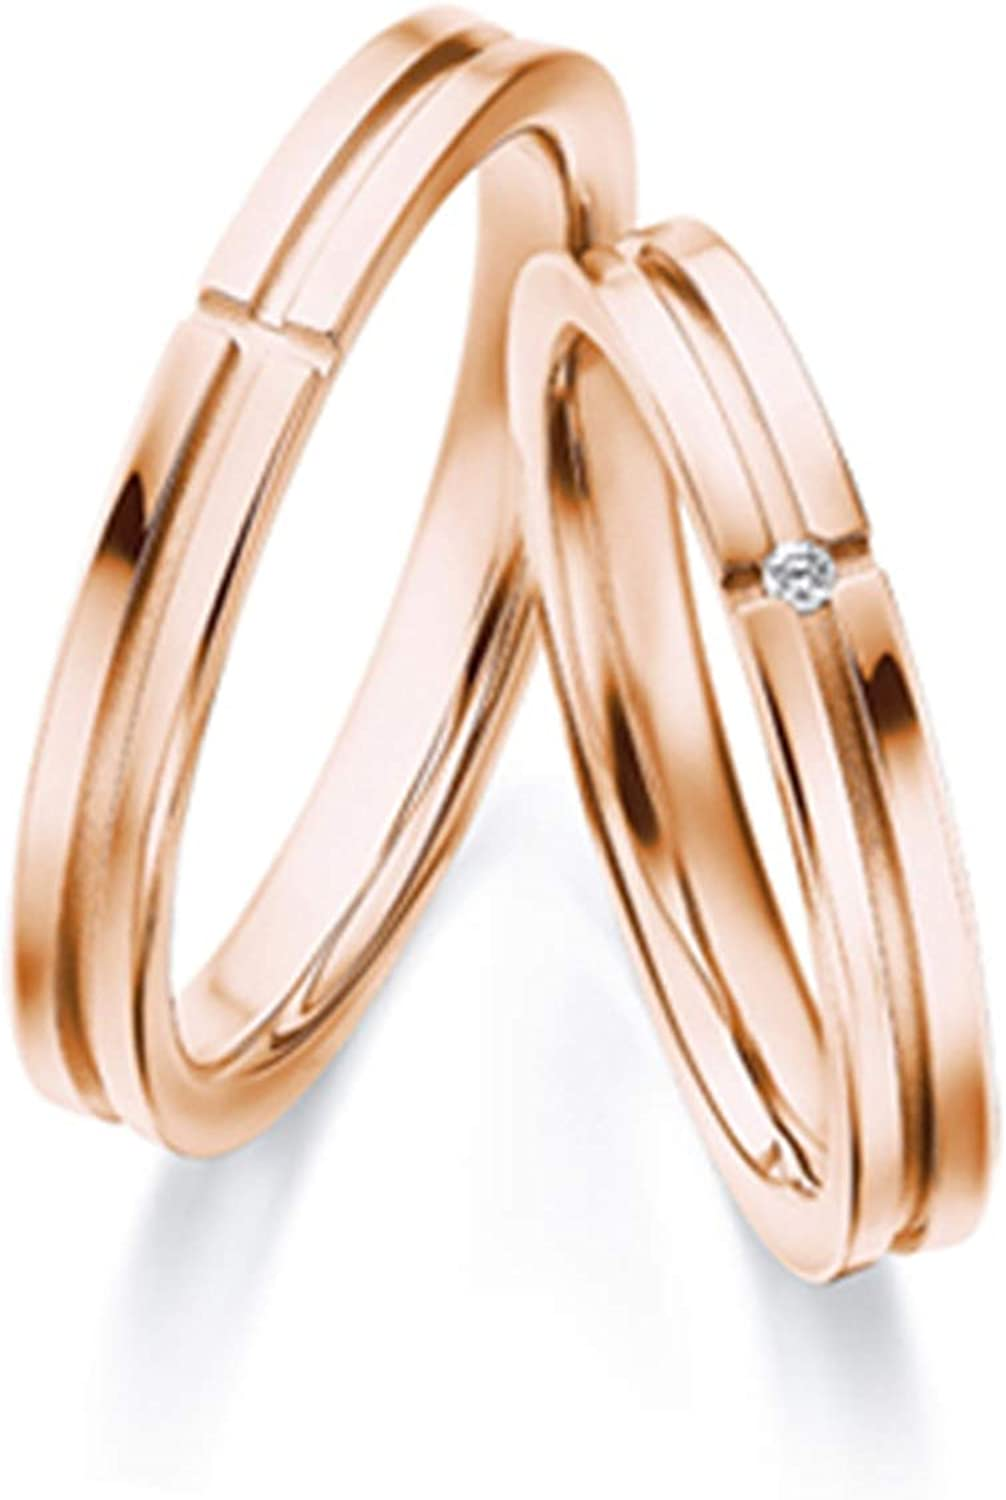 Aokarry 18k Rose Gold Wedding Bands For Men And Women 1 Pair Simple Cross With Diamond 0 01ct Engagement Wedding Ring For Him And Her Set Women Size 5 Men Size 10 Amazon Com